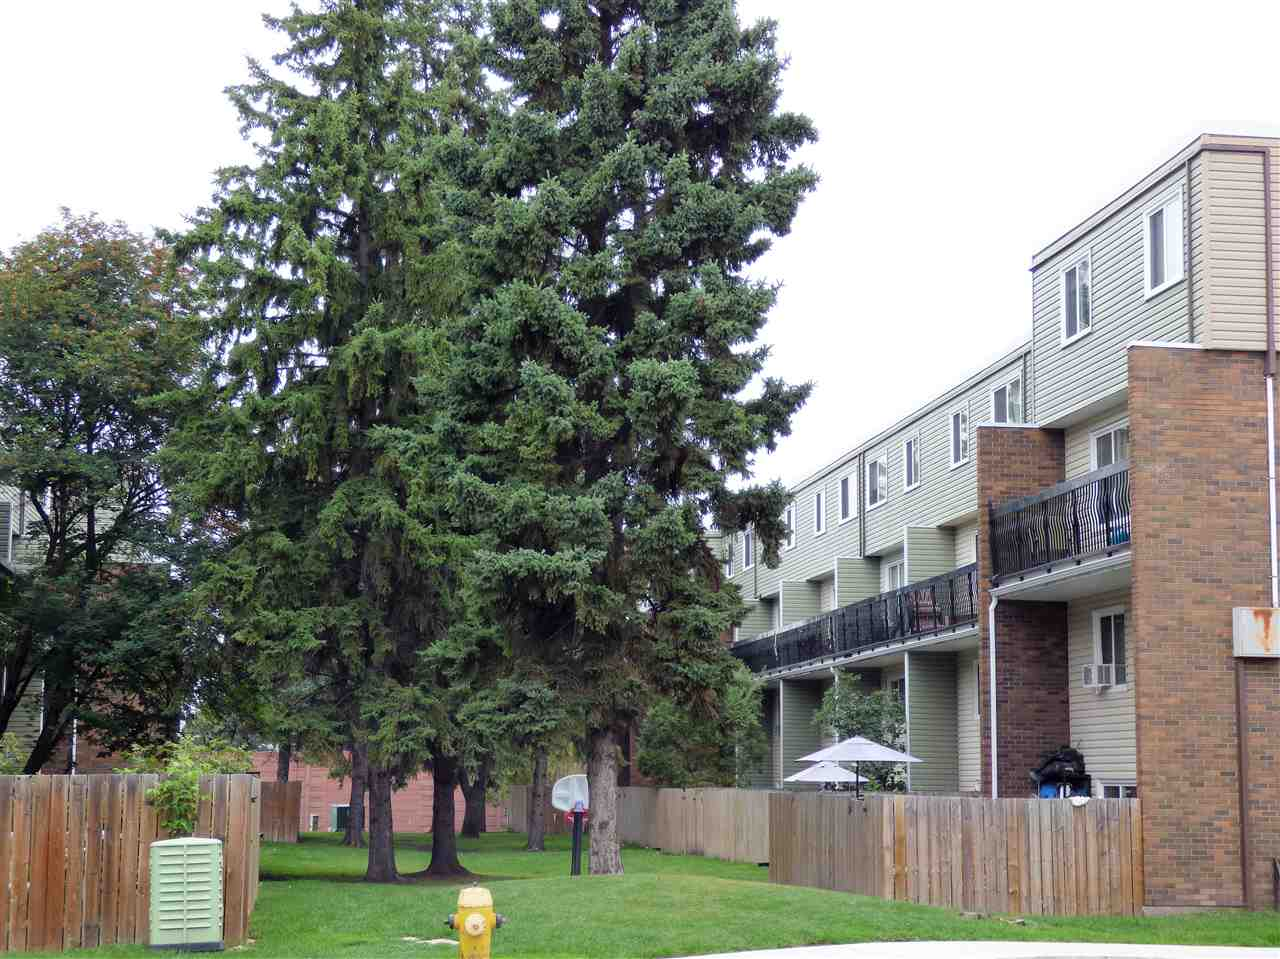 Main Photo: 208 7835 159 Street in Edmonton: Zone 22 Condo for sale : MLS® # E4077136